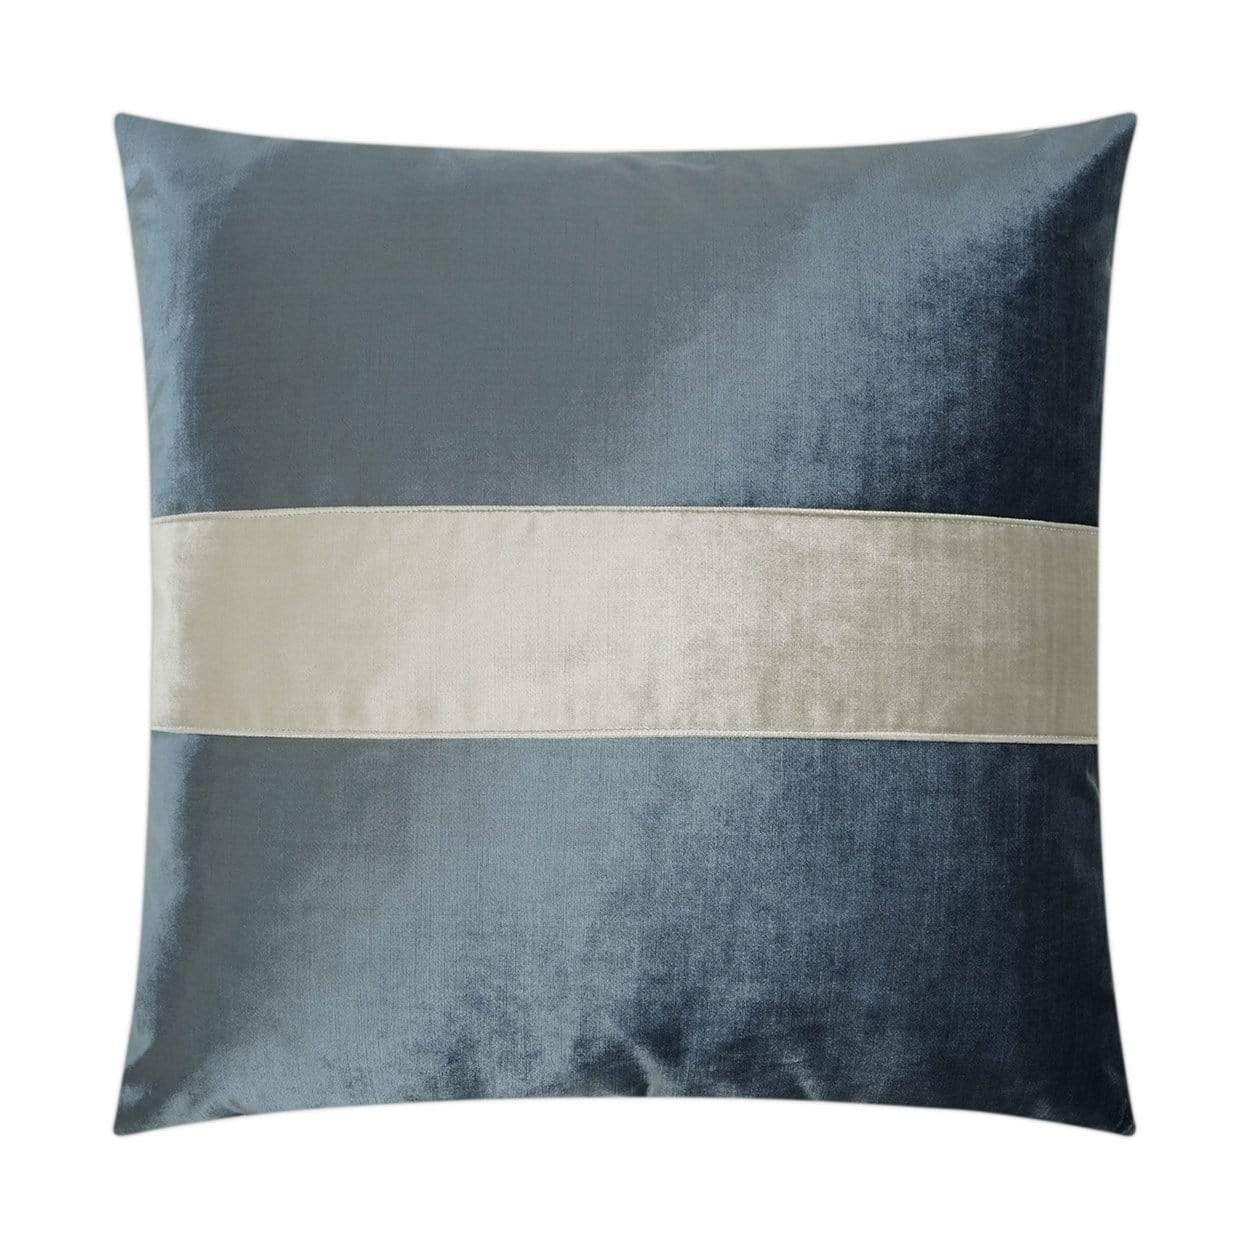 D.V. Kap D.V. Kap Iridescence Band Pillow - Available in 8 Colors Baltic 3384-B